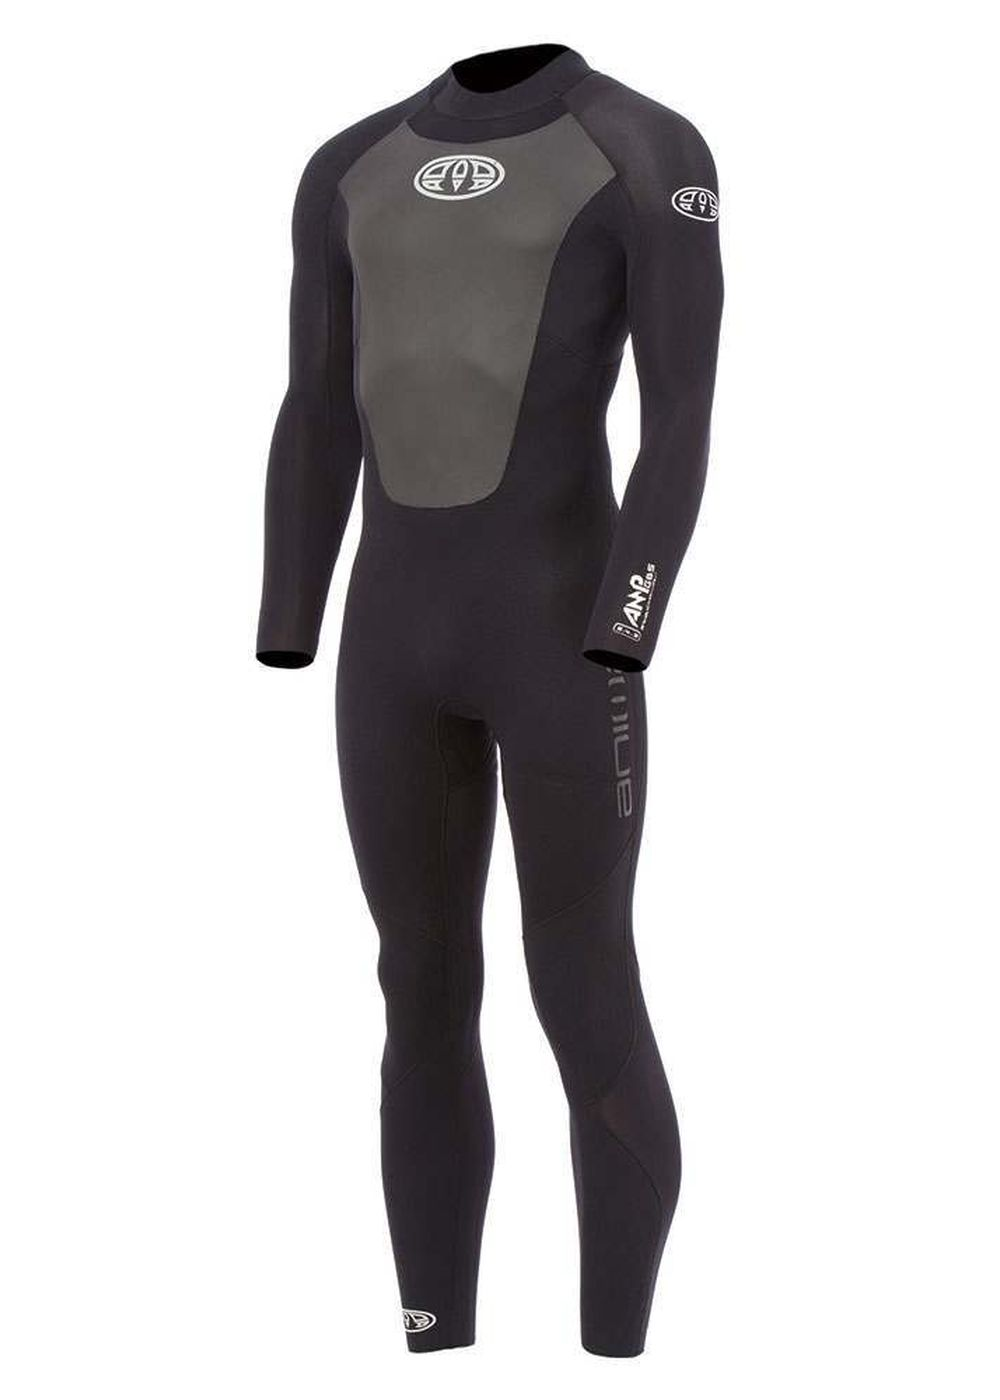 Animal Amp Bz 5/4/3 Gbs Wetsuit 2016 Black Picture